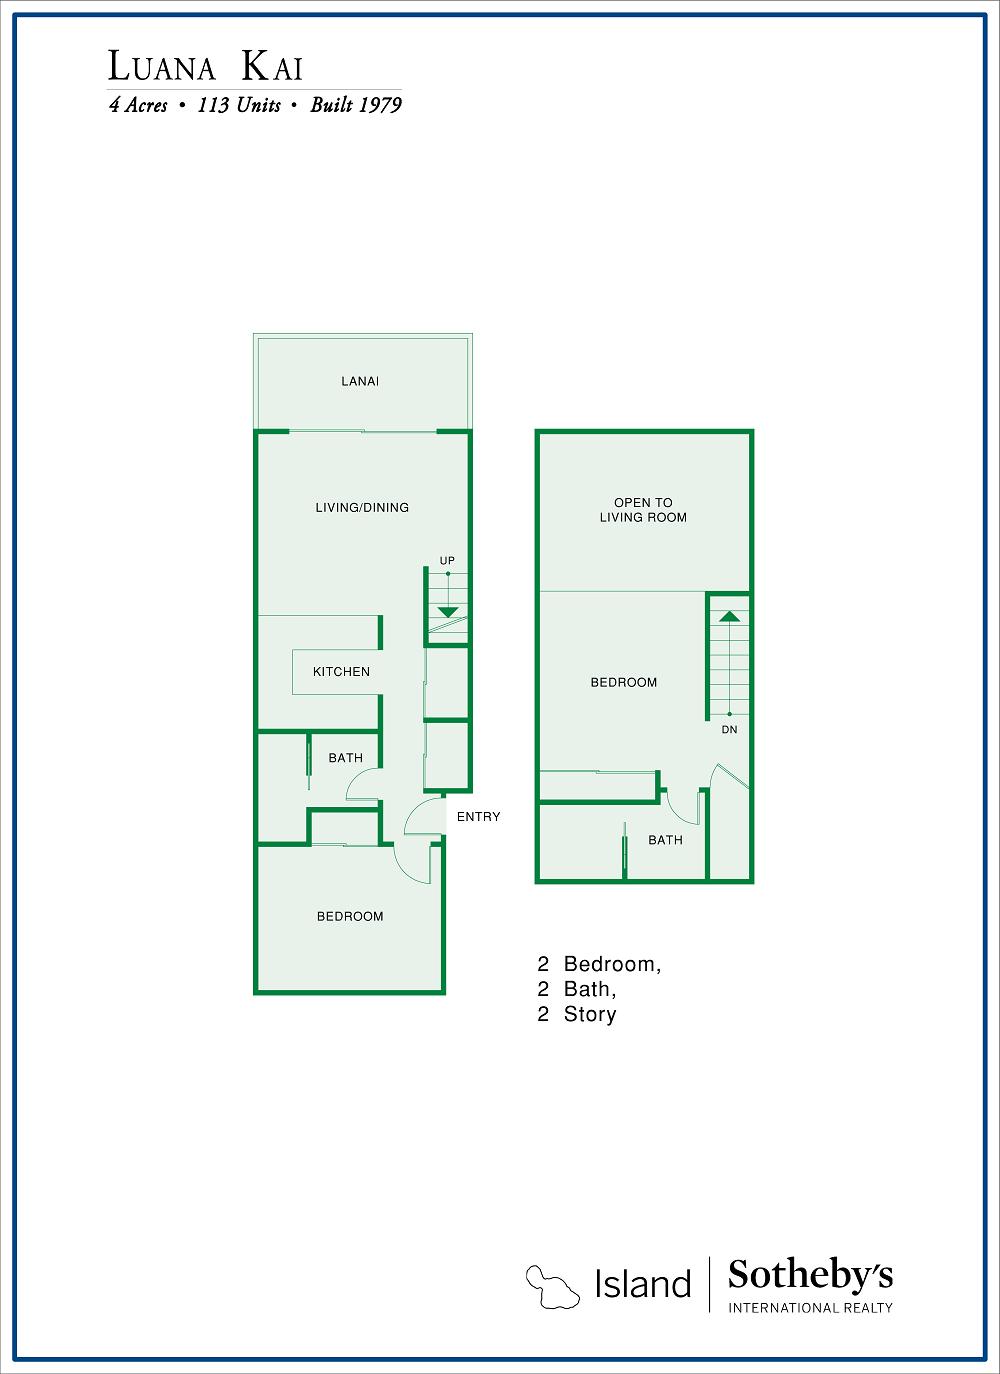 Luana Kai Floor Plan 2 Bedroom with Loft